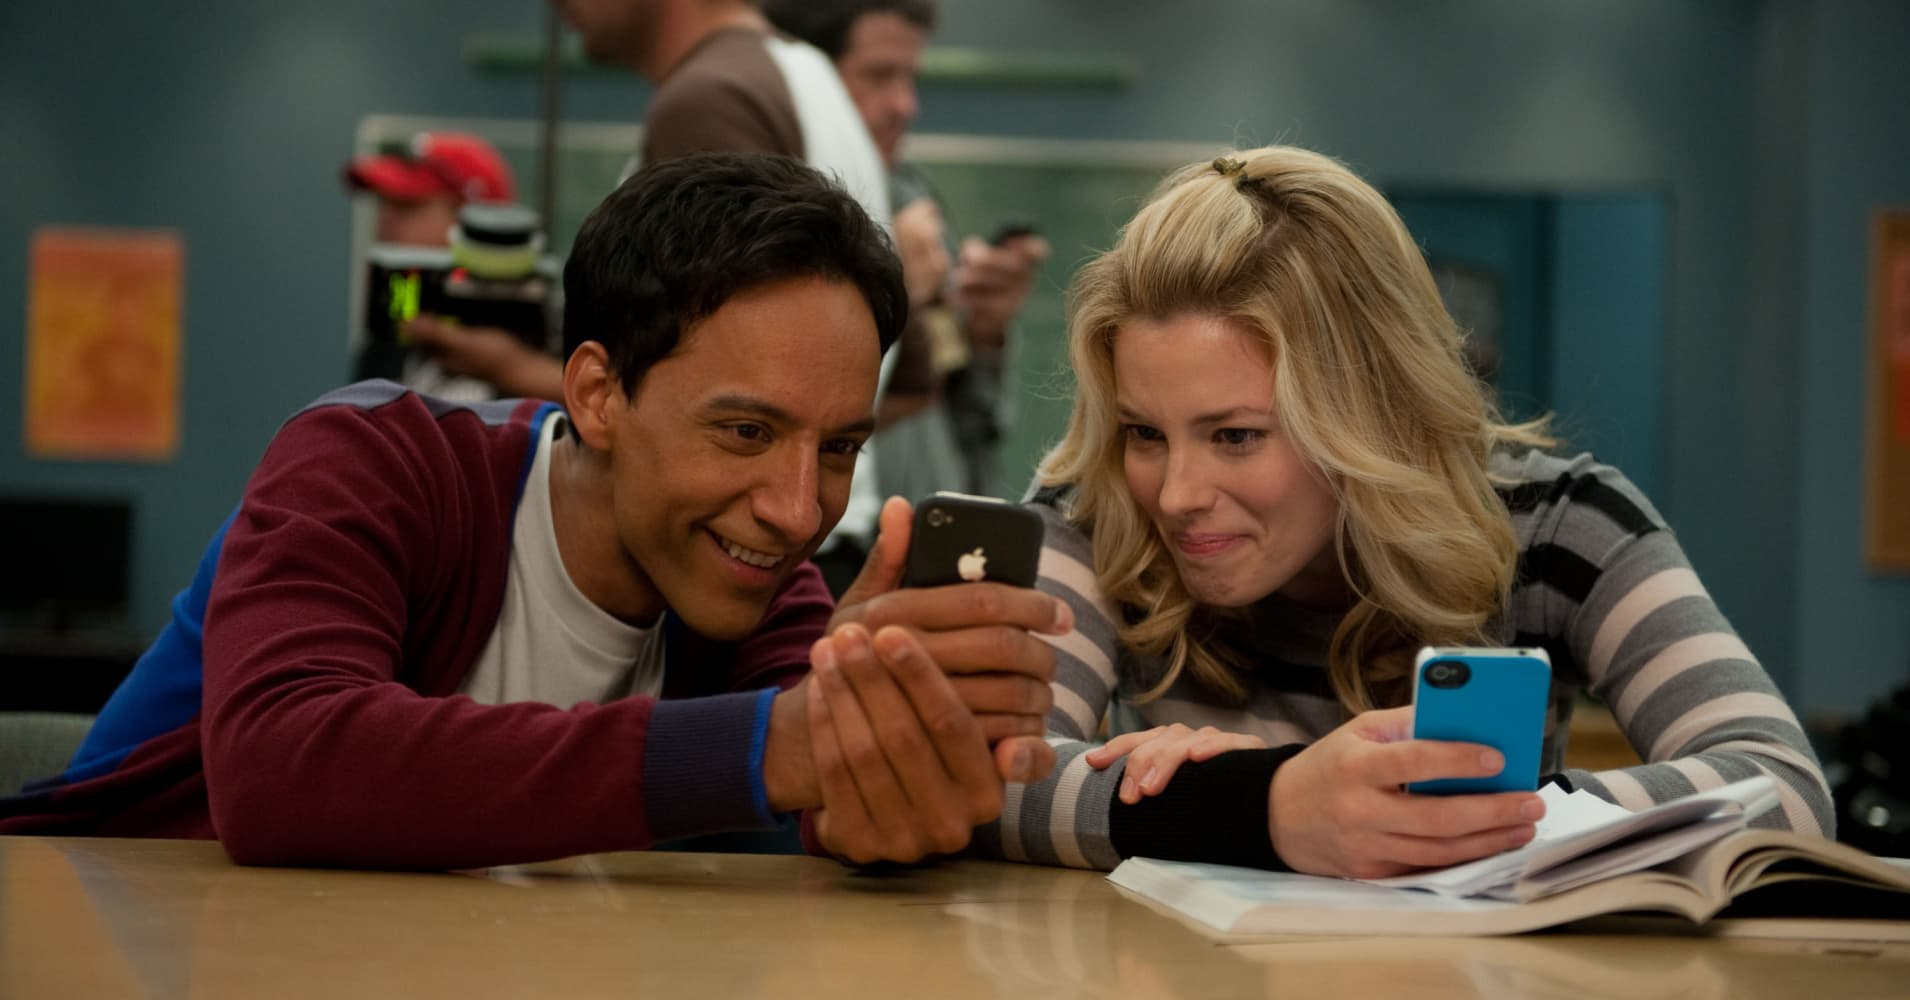 Glued to your smartphone? Try these 6 techniques to take back control of your life